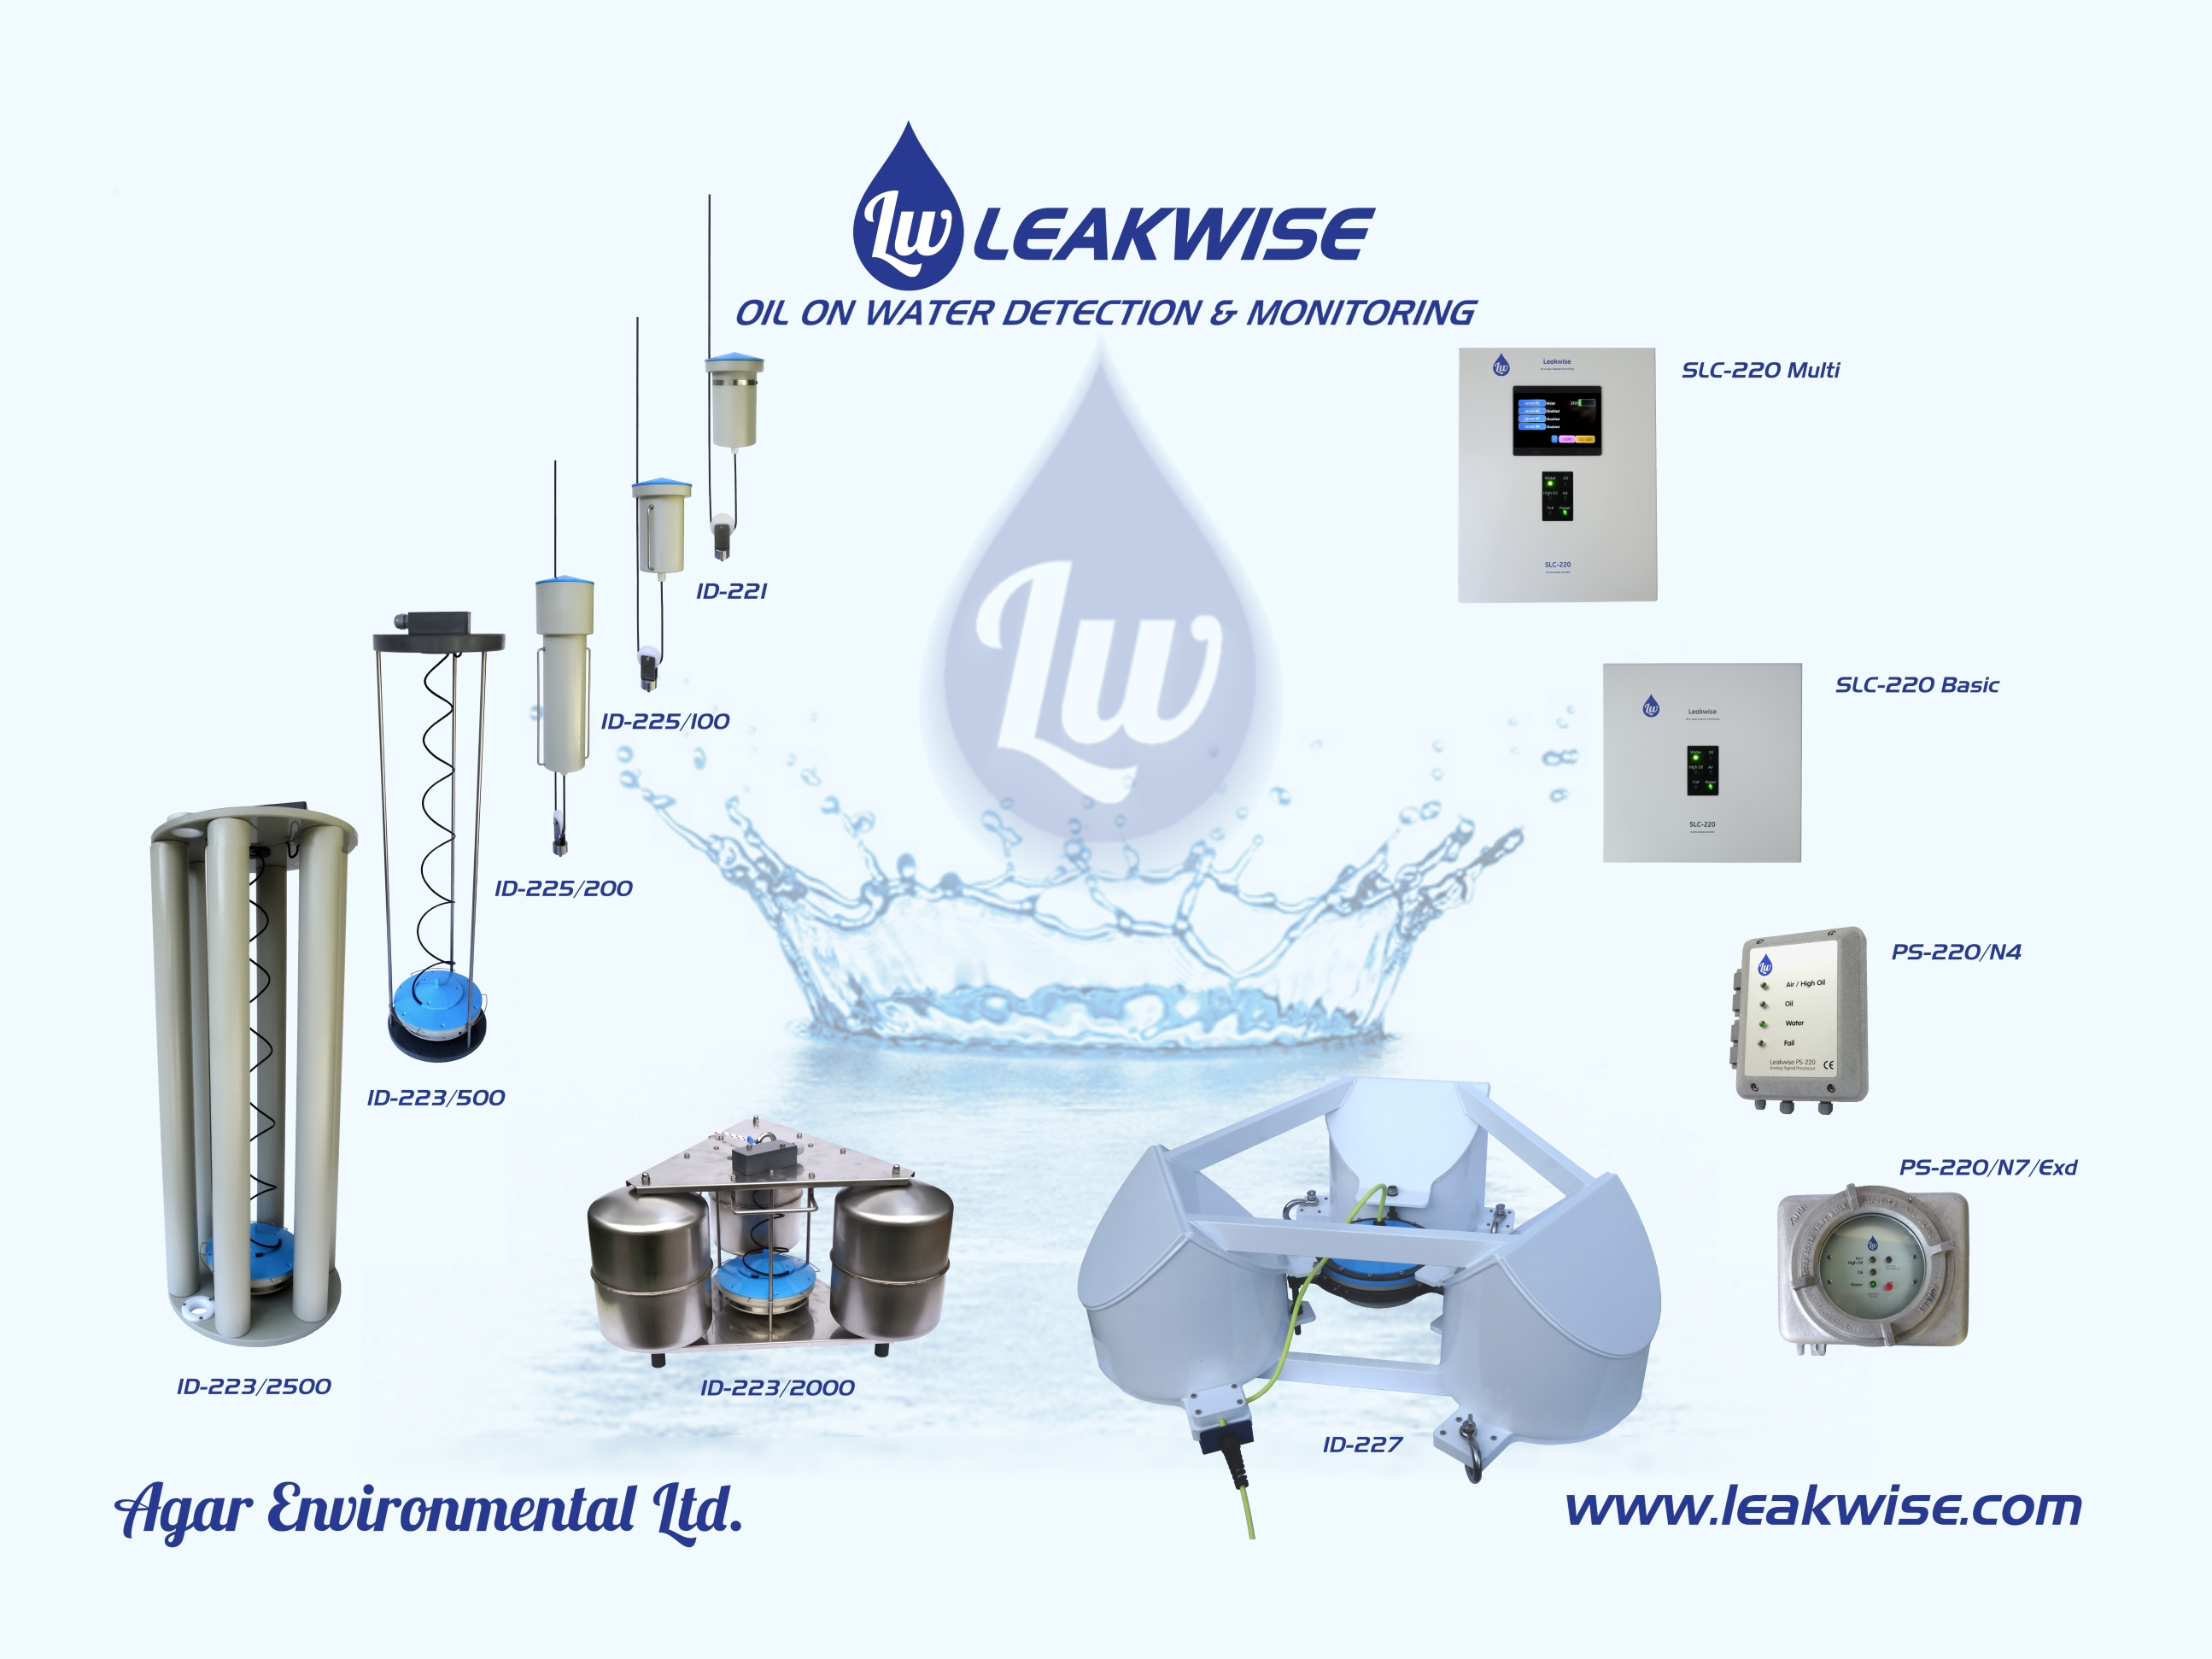 Leakwise poster